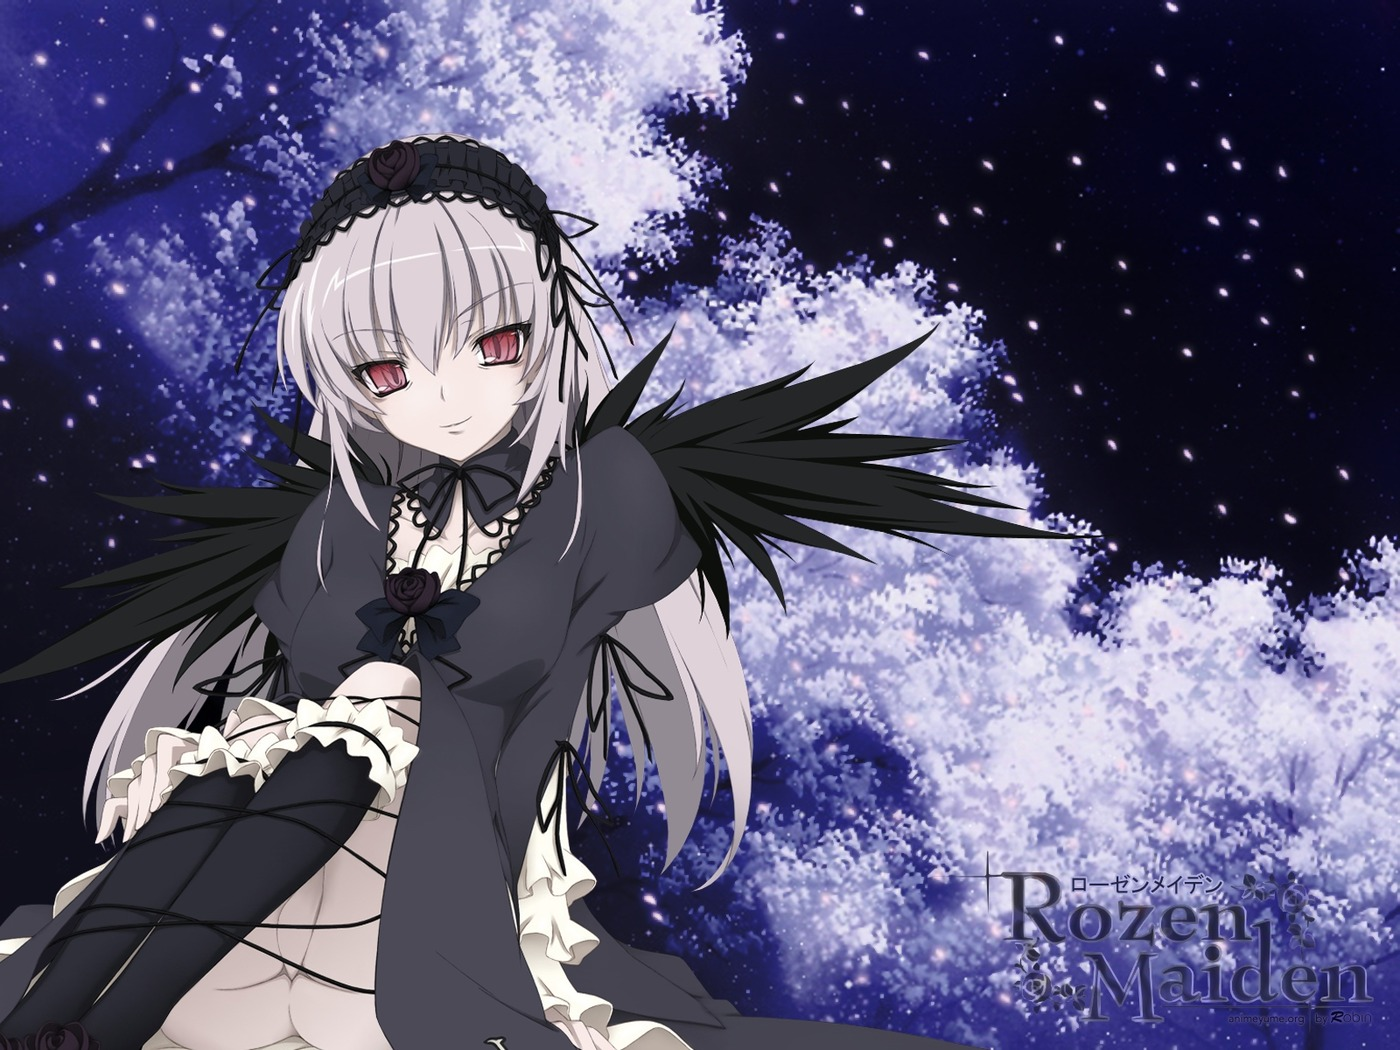 Rozen Maiden Anime Wallpaper # 19